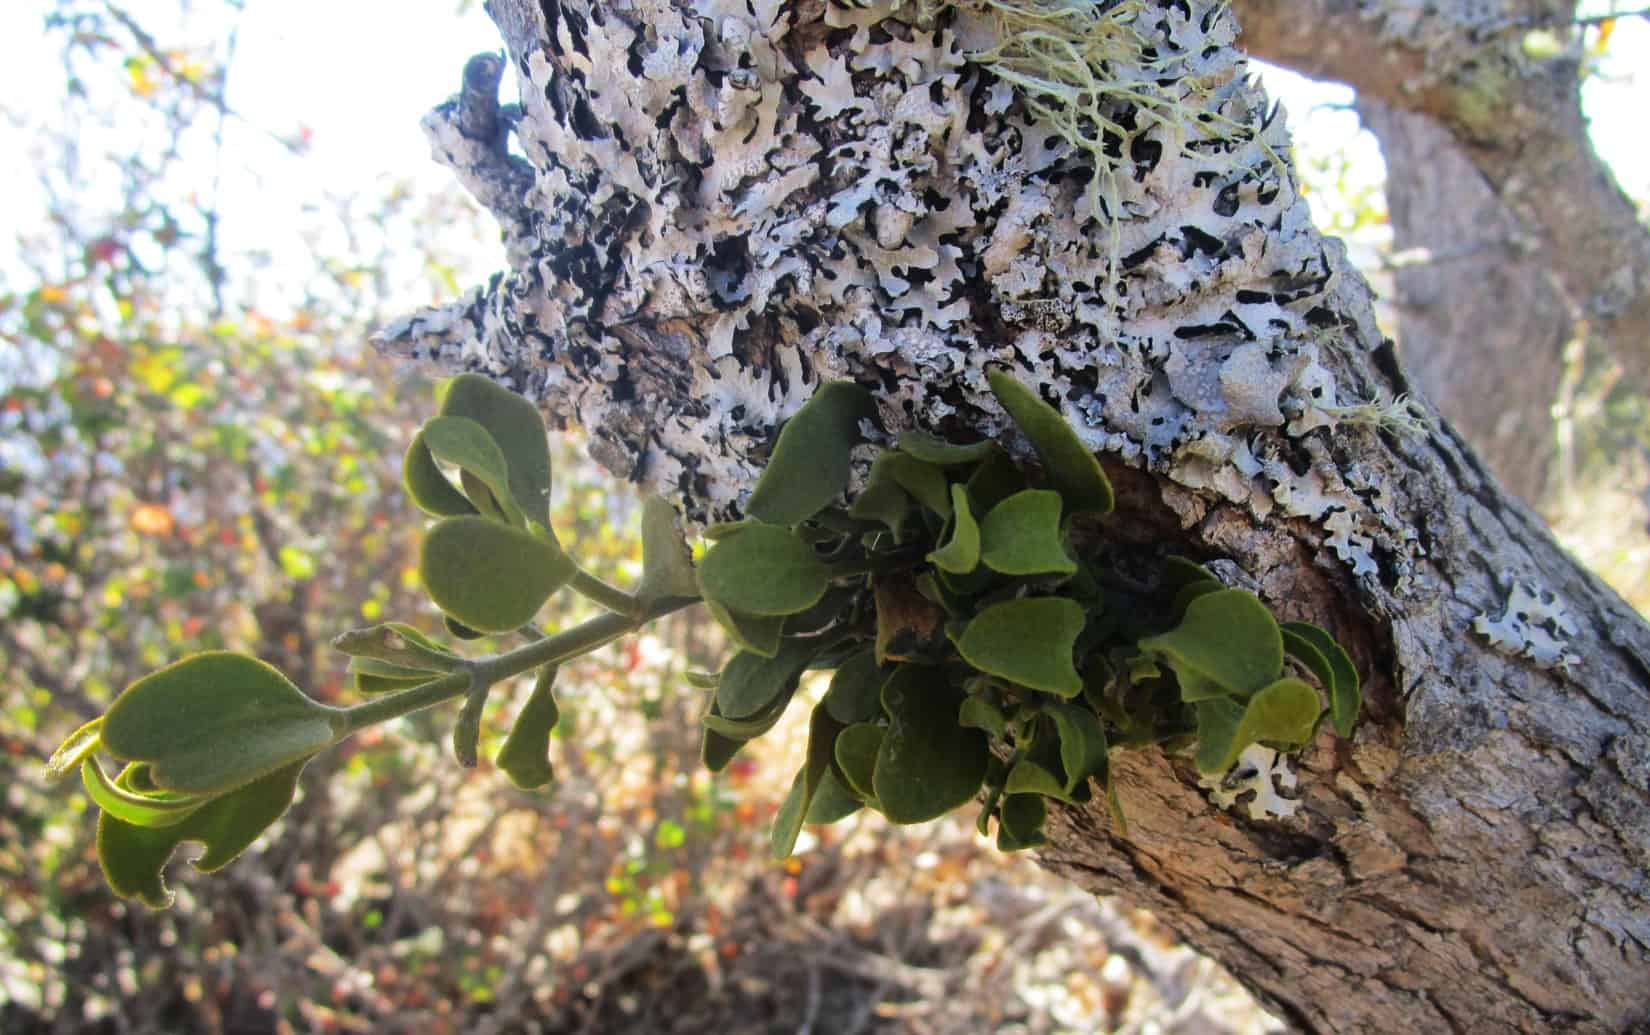 Leafy mistletoe growing on a hardwood tree